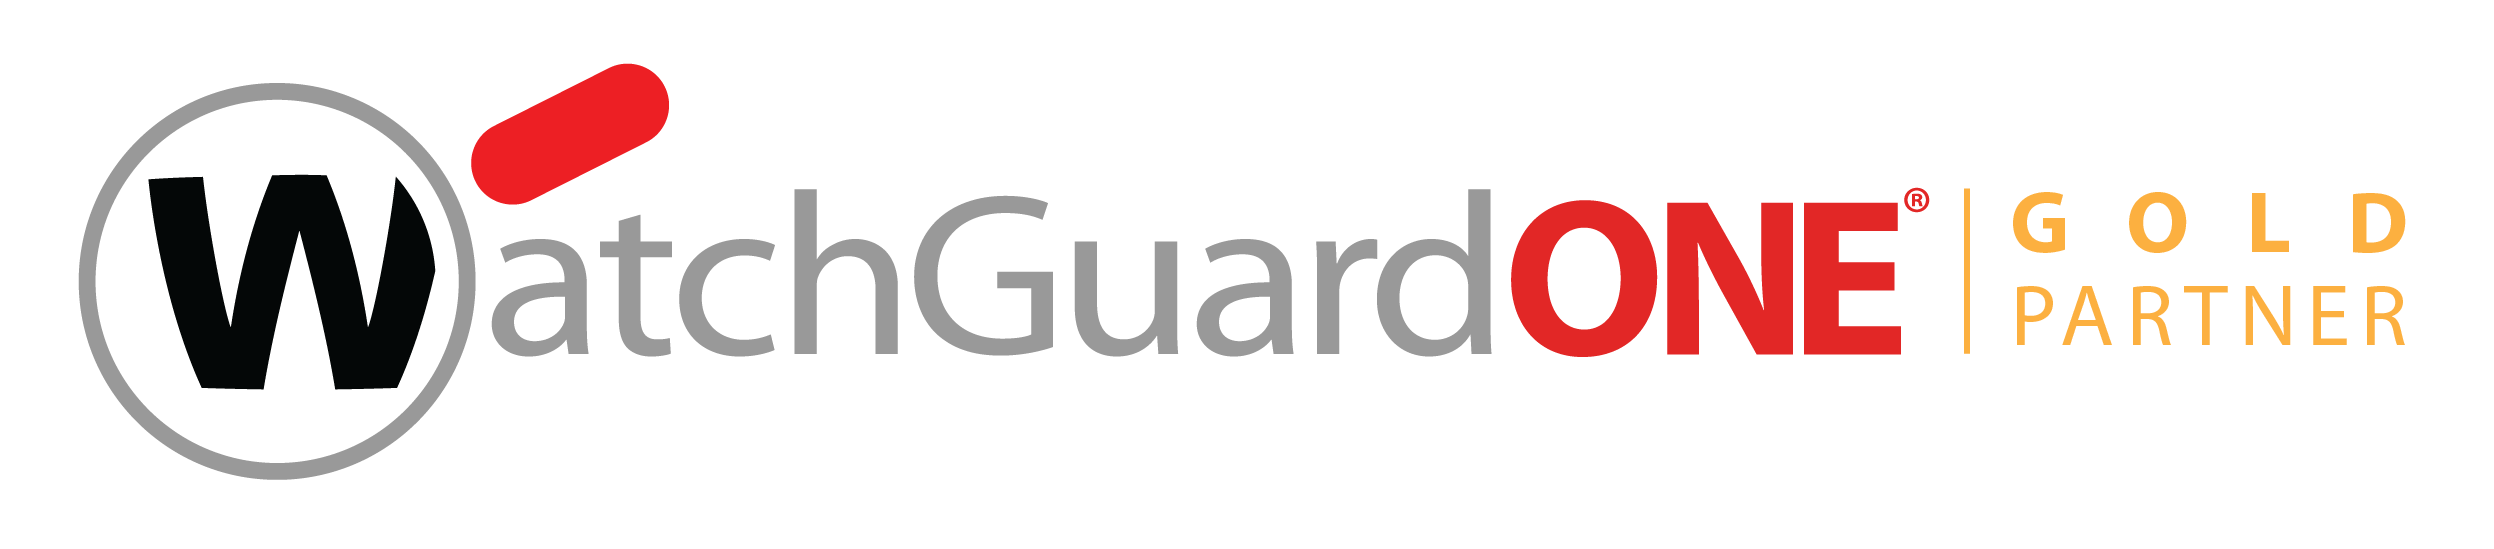 Watch Guard One